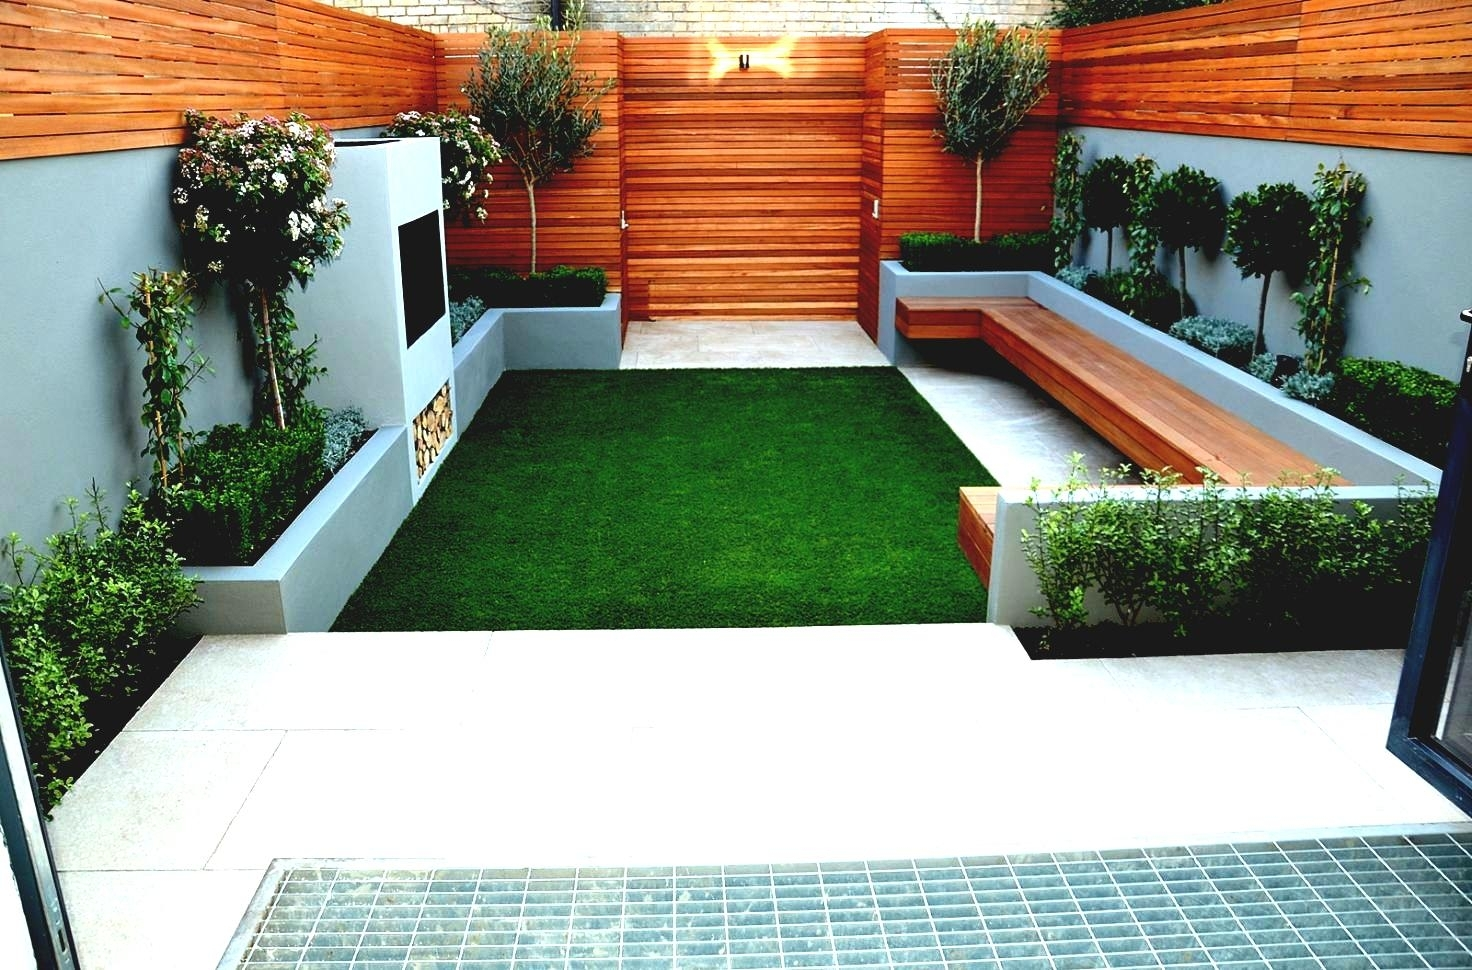 Paving ideas for small back gardens garden design for Garden layout ideas small garden